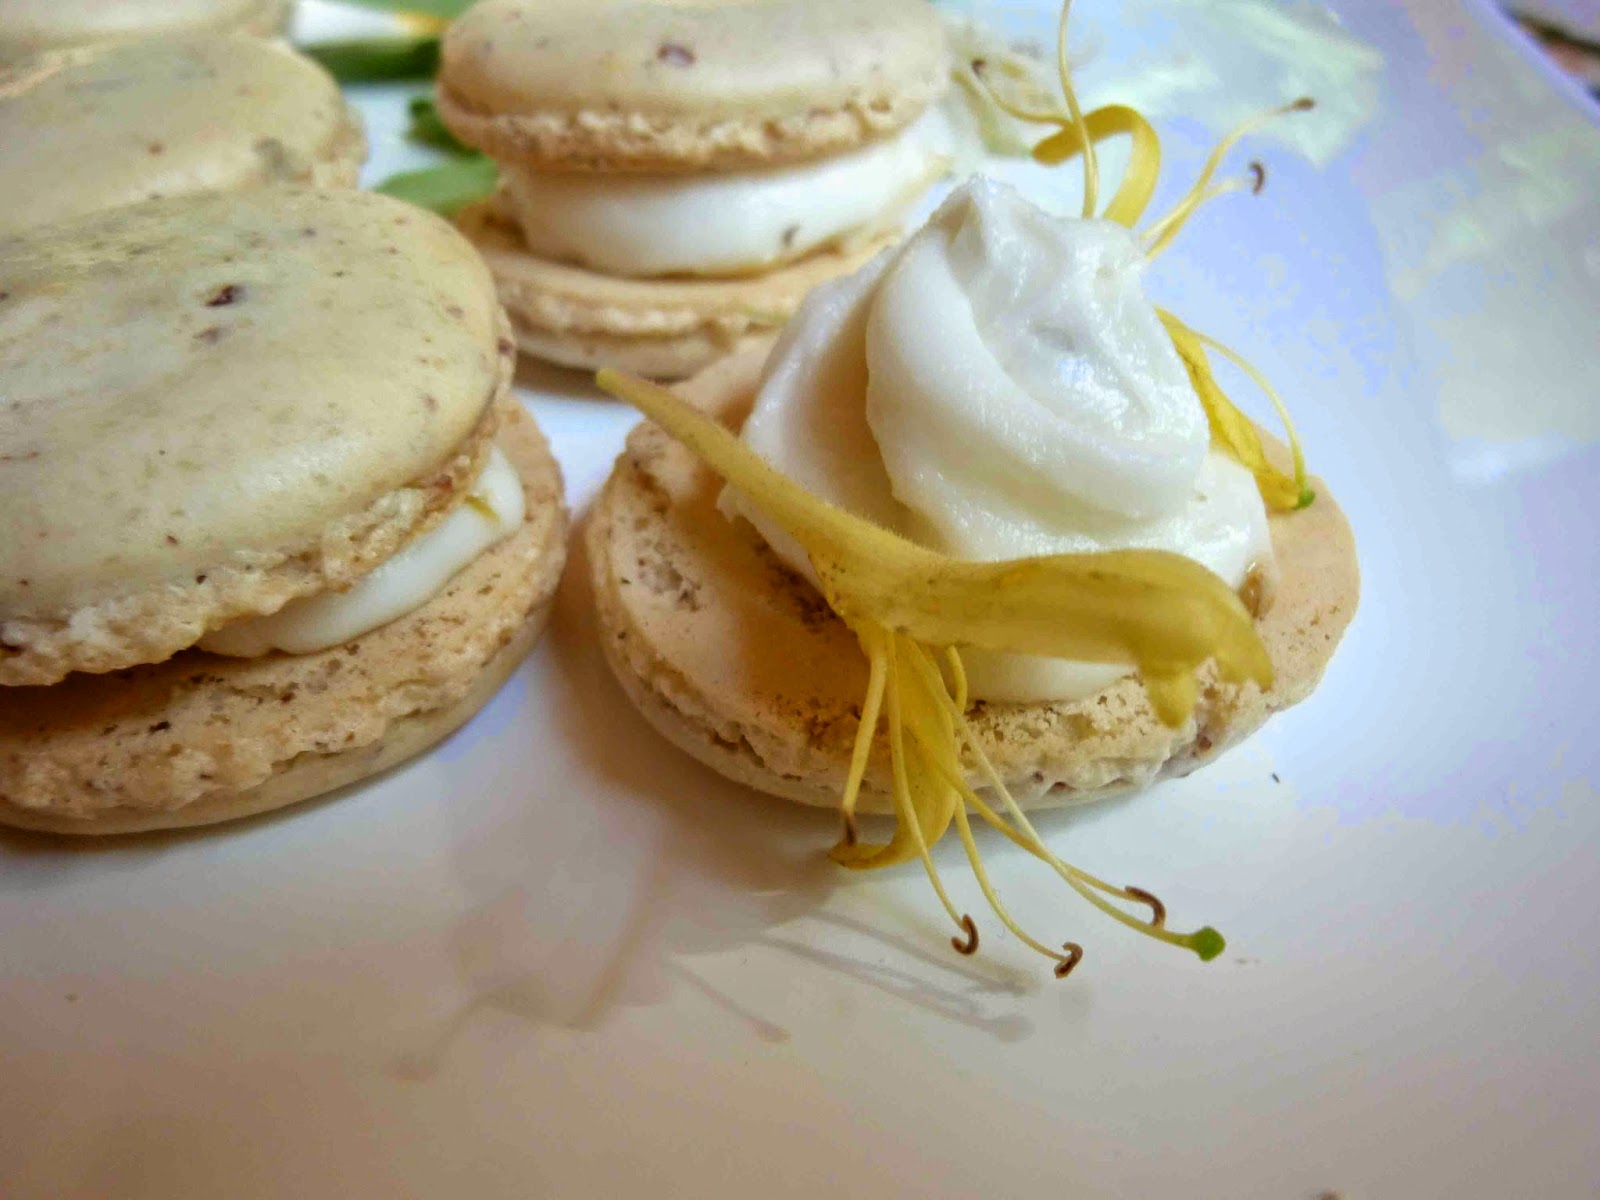 ... , sweet honeysuckle buttercream wrapped in a vanilla macarons